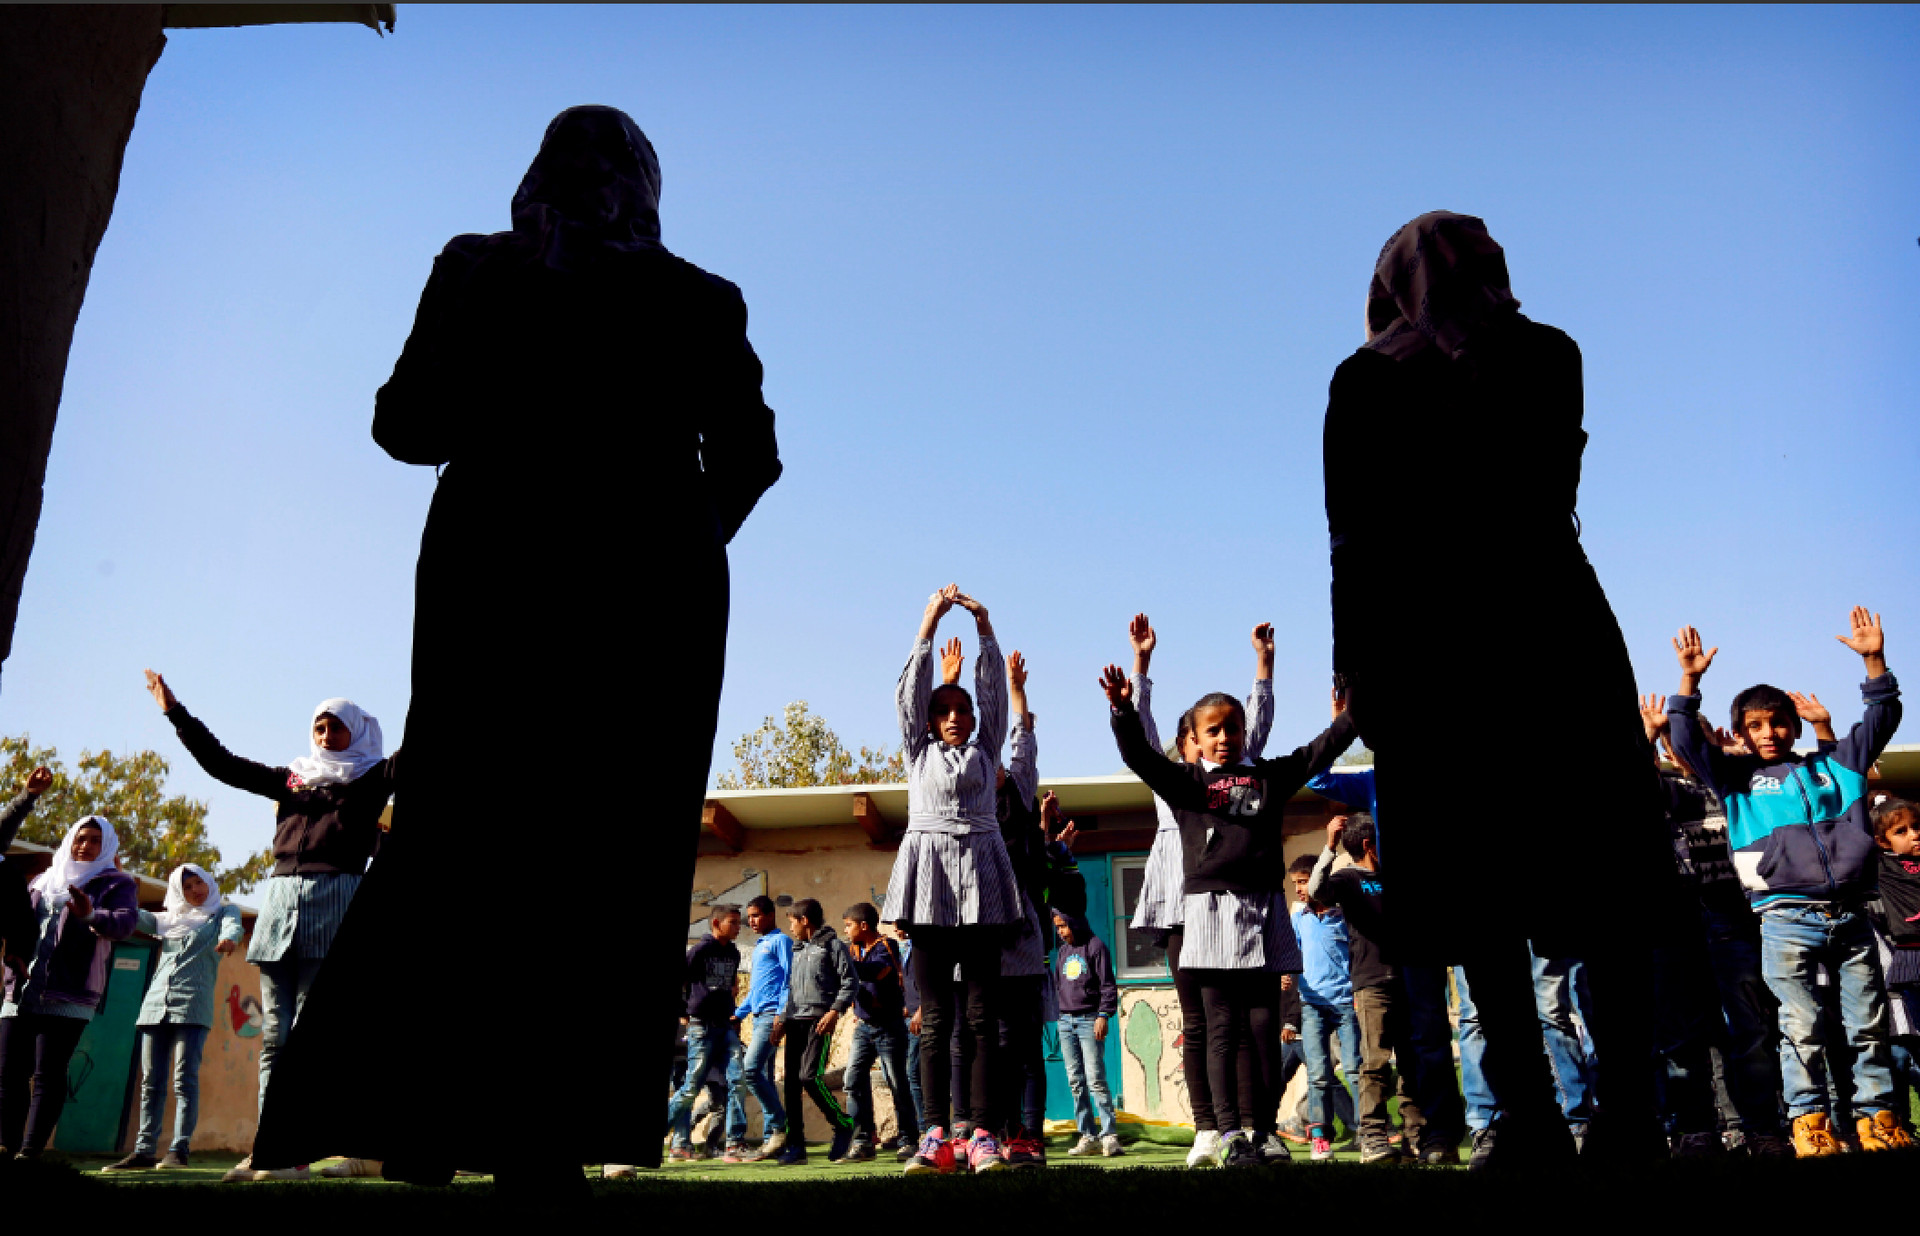 Israel has issued an order for the closure of the Bedouin Al Khan al Ahmar School in the West Bank.